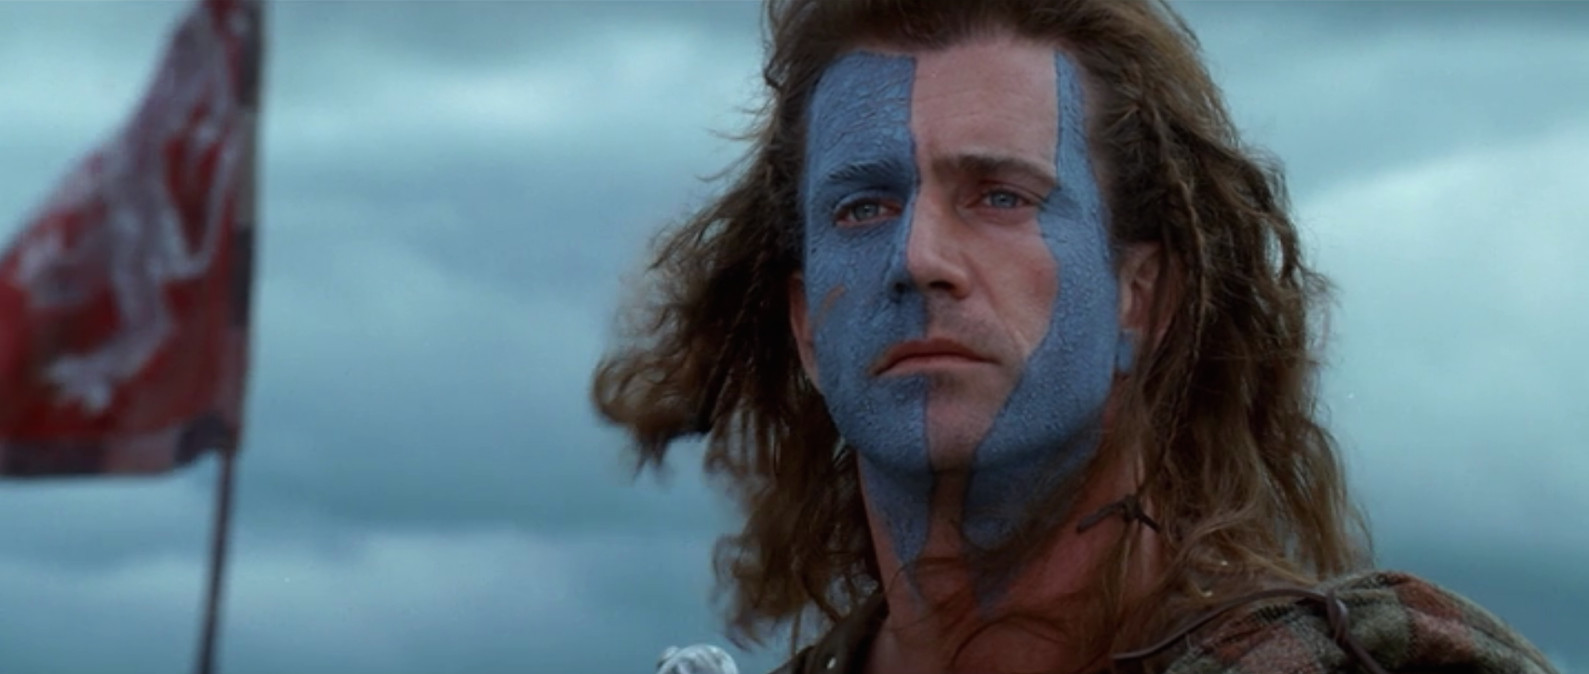 20 Things You Never Knew About 'Braveheart' - Beyond the ...